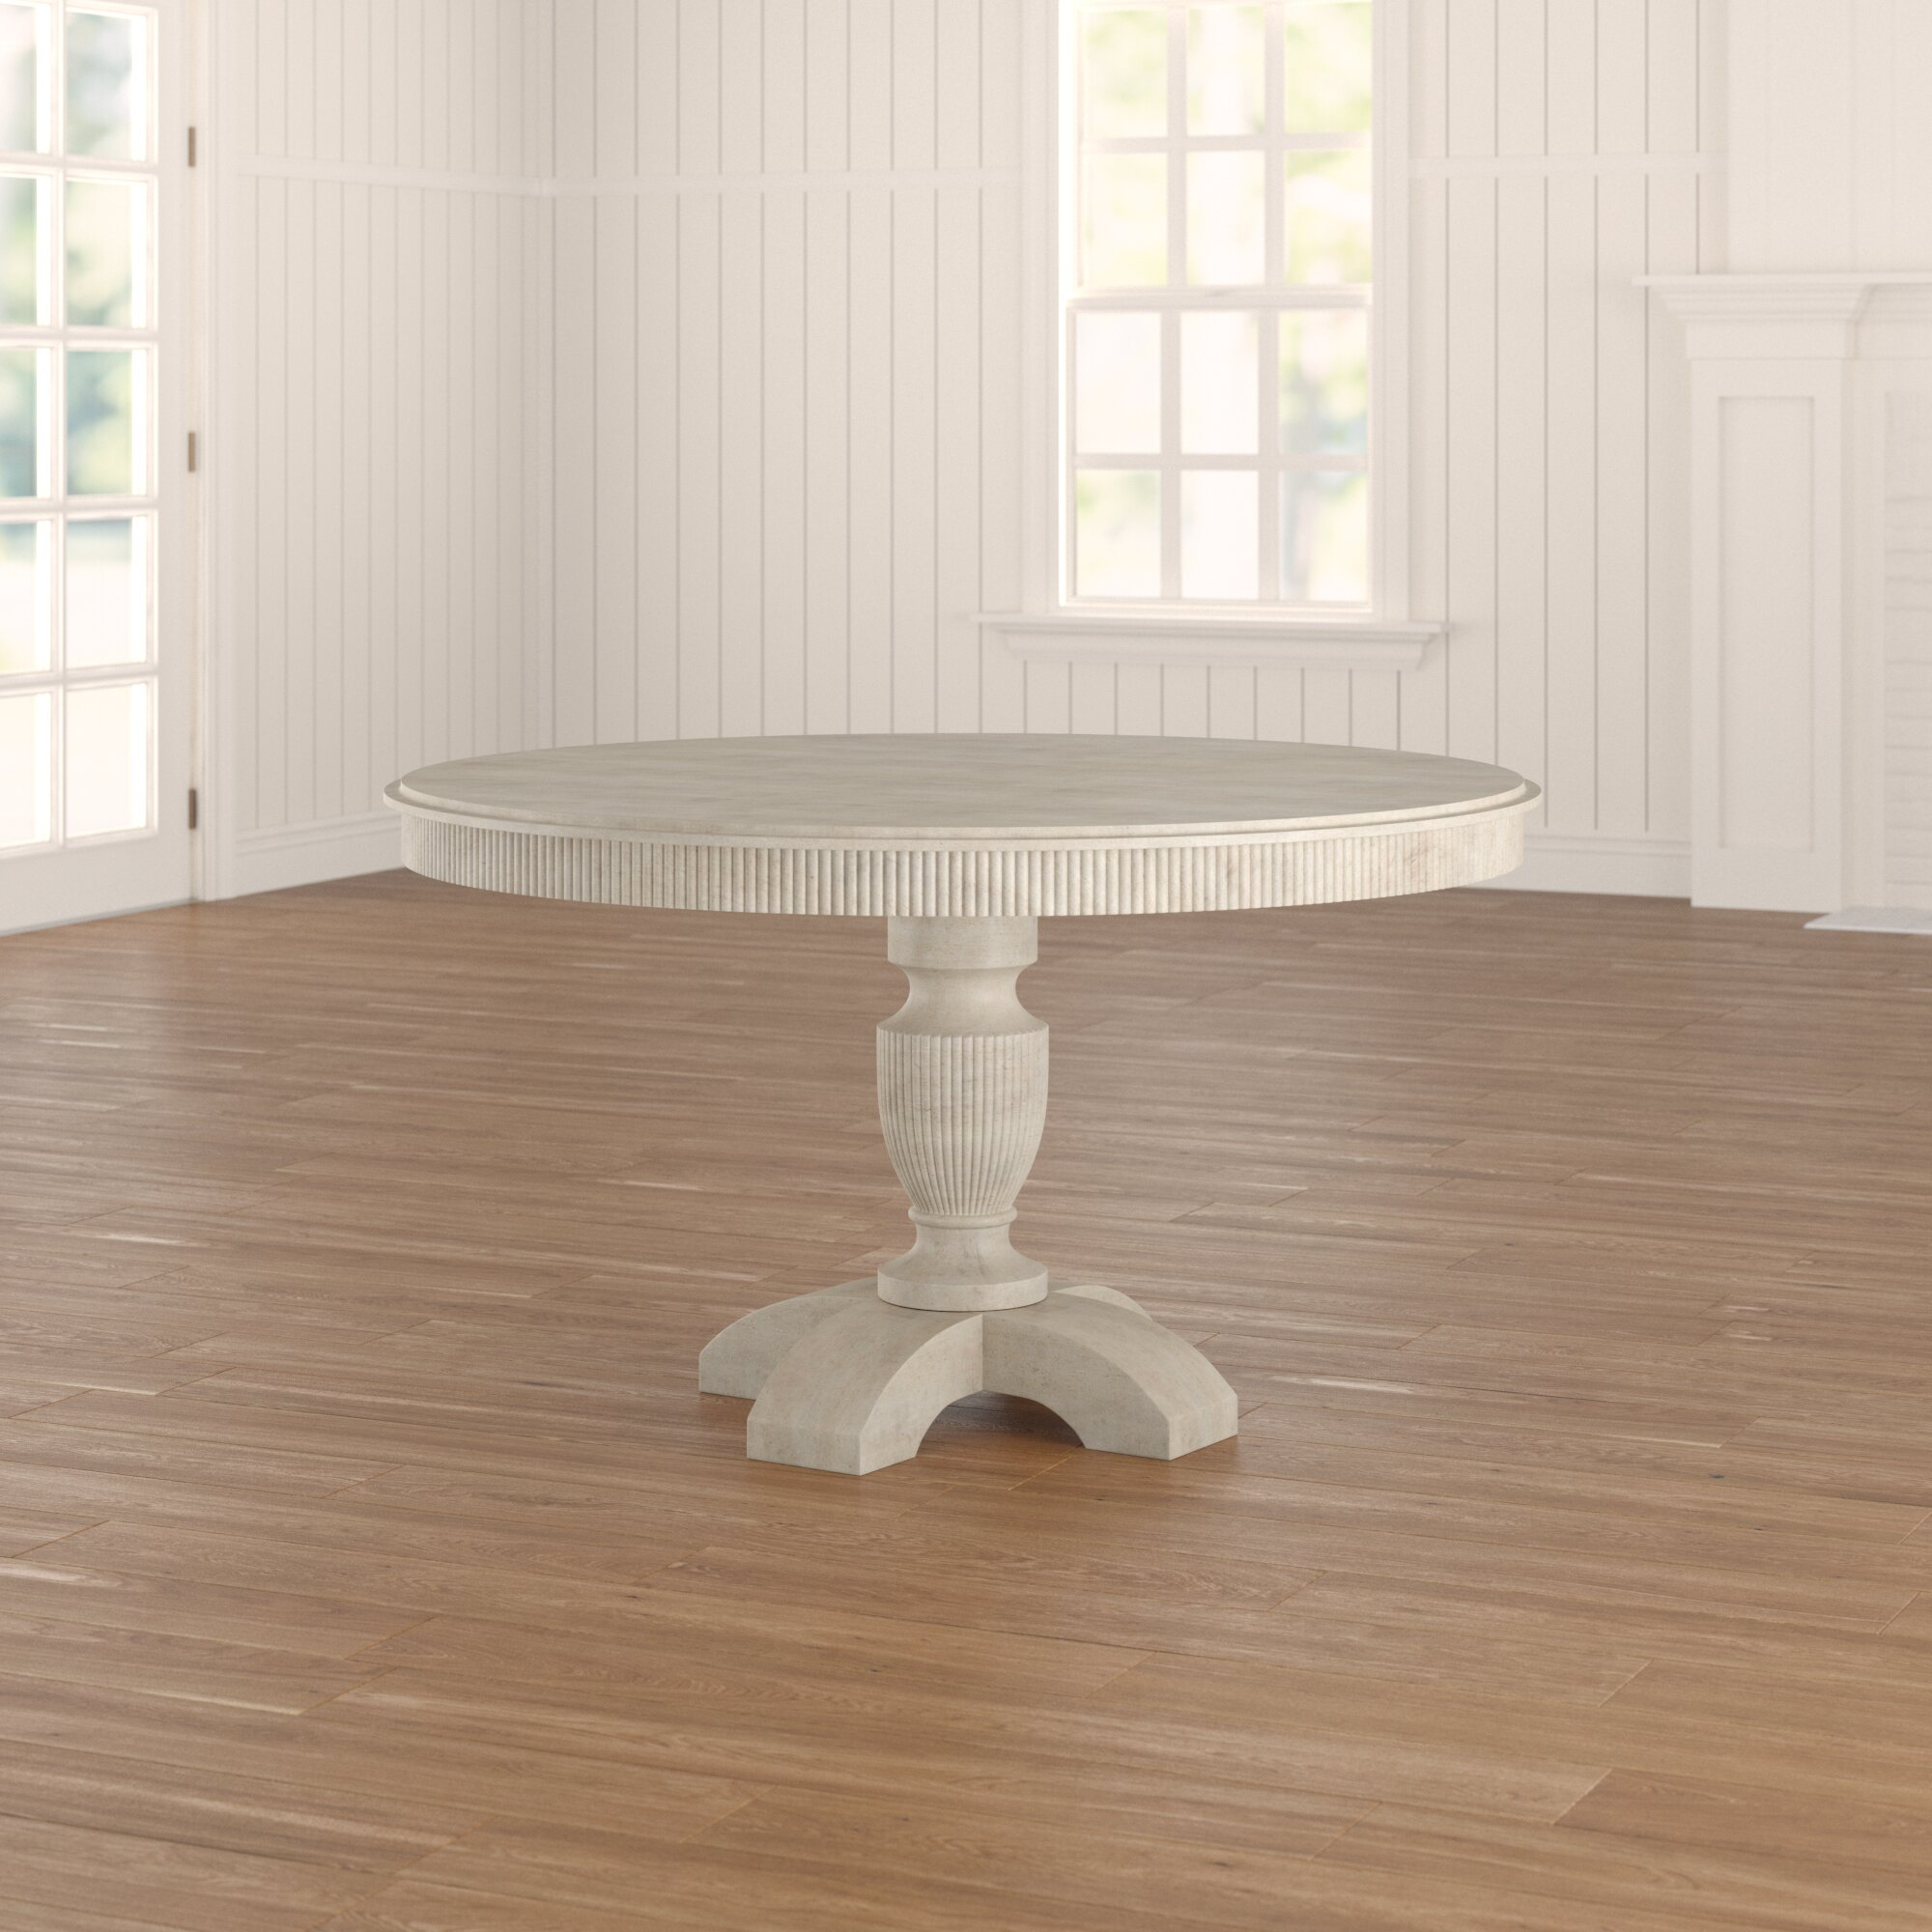 Coursey Round Dining Table Intended For Current Warner Round Pedestal Dining Tables (View 22 of 25)